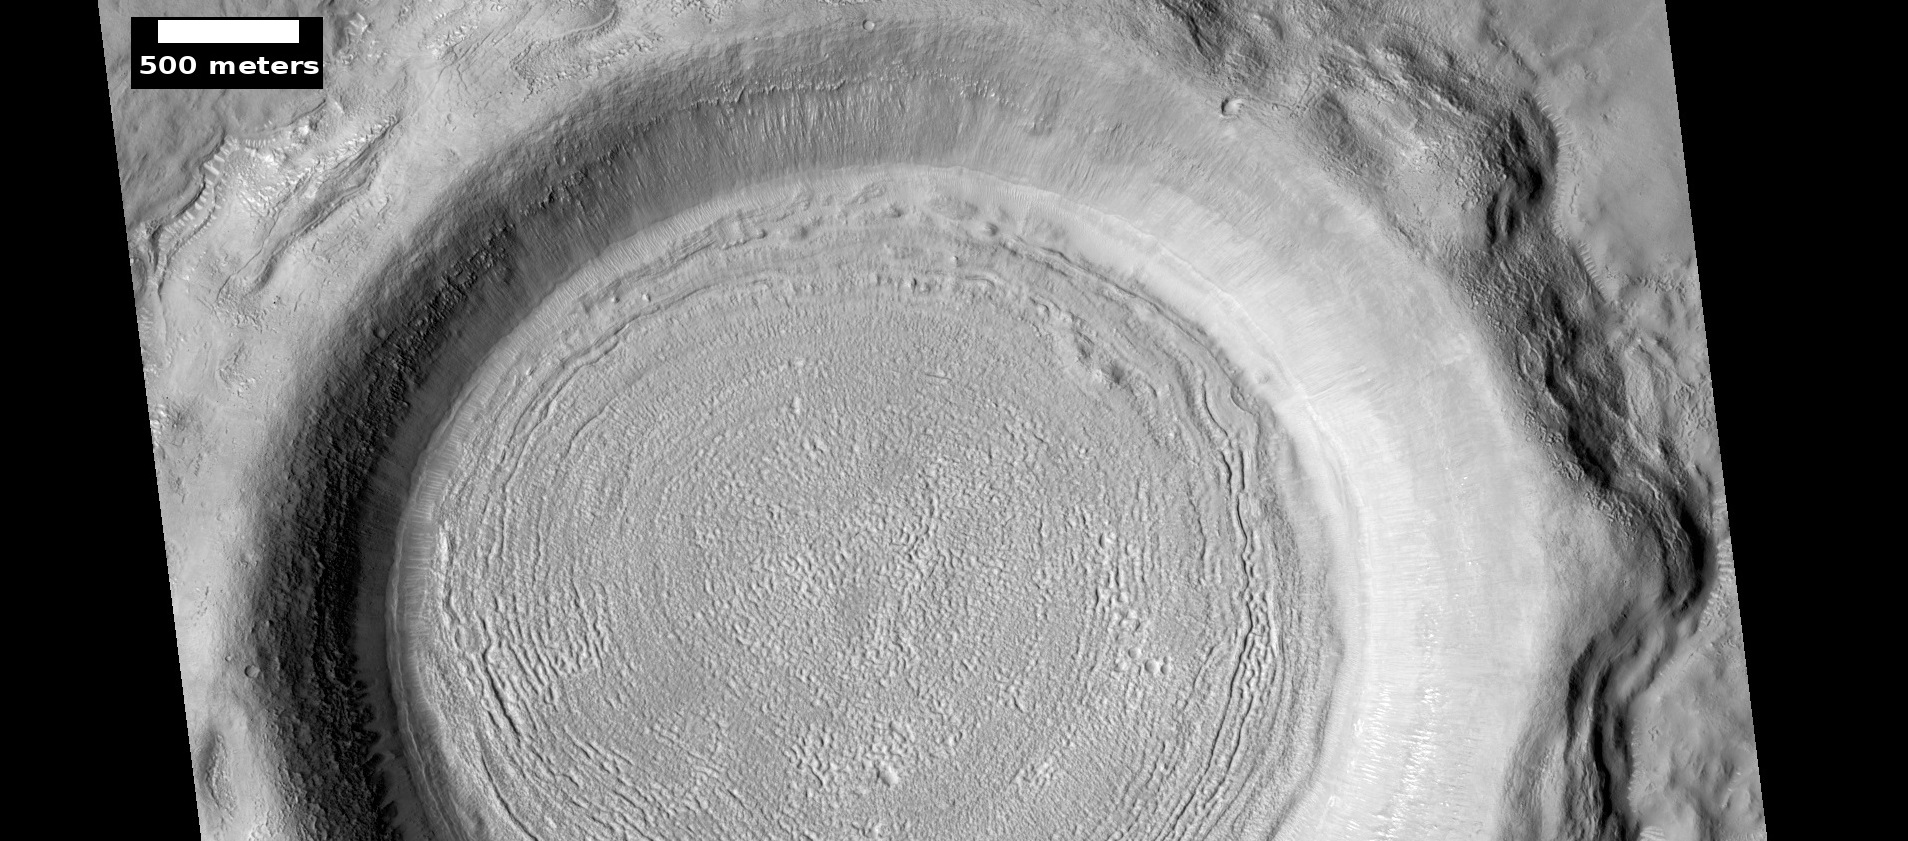 Crater floor showing concentric crater fill, as seen by HiRISE under HiWish program